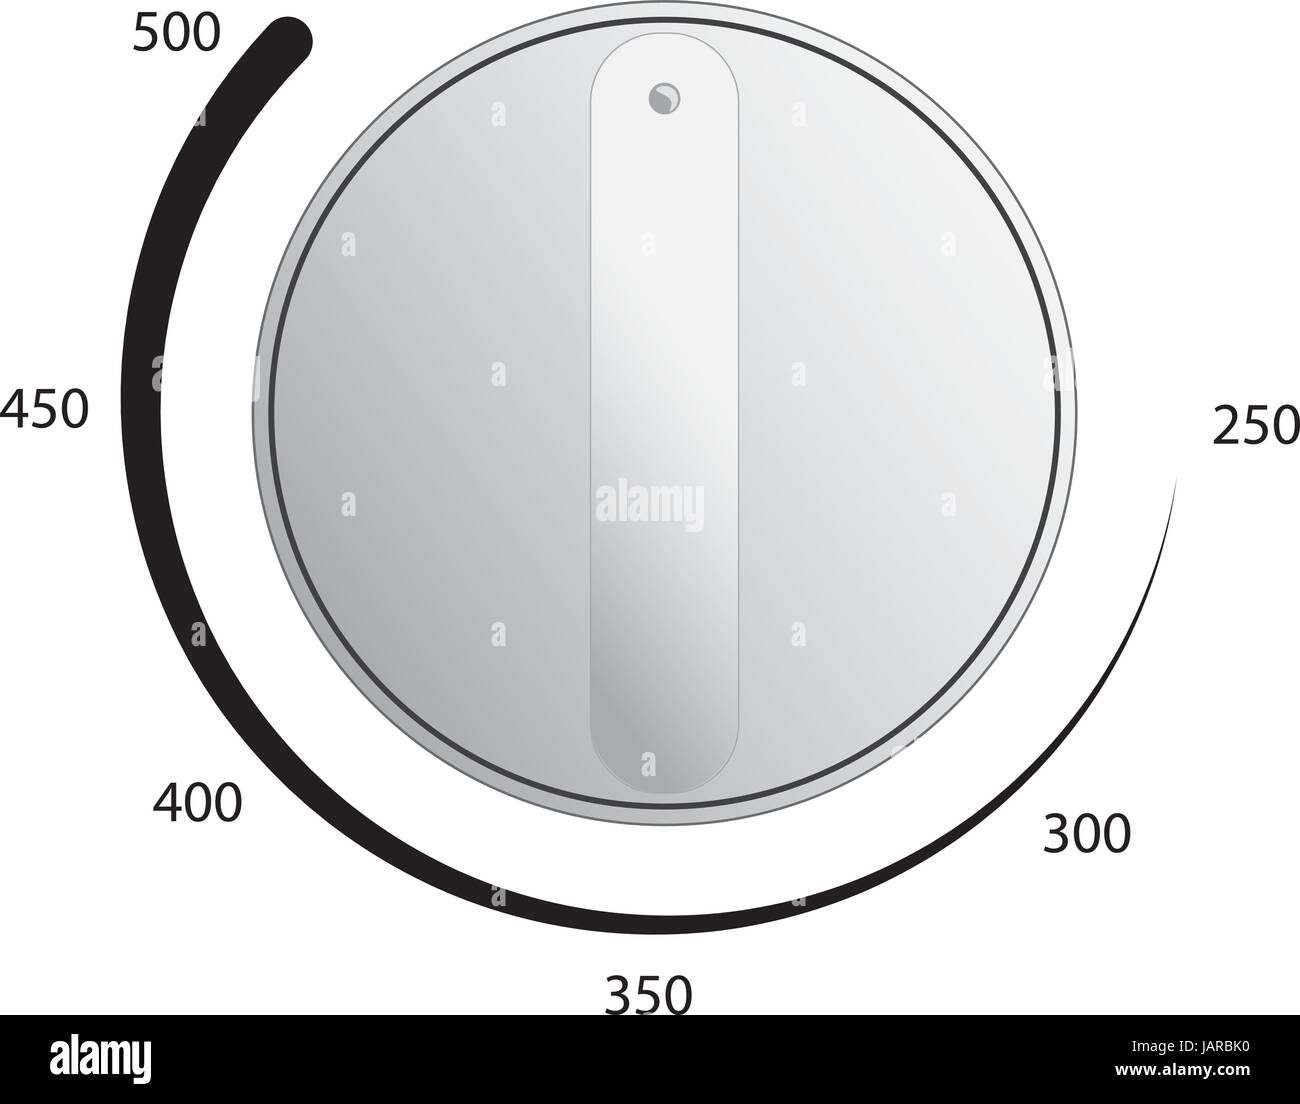 Oven dial vector with temperature measurements - Stock Vector